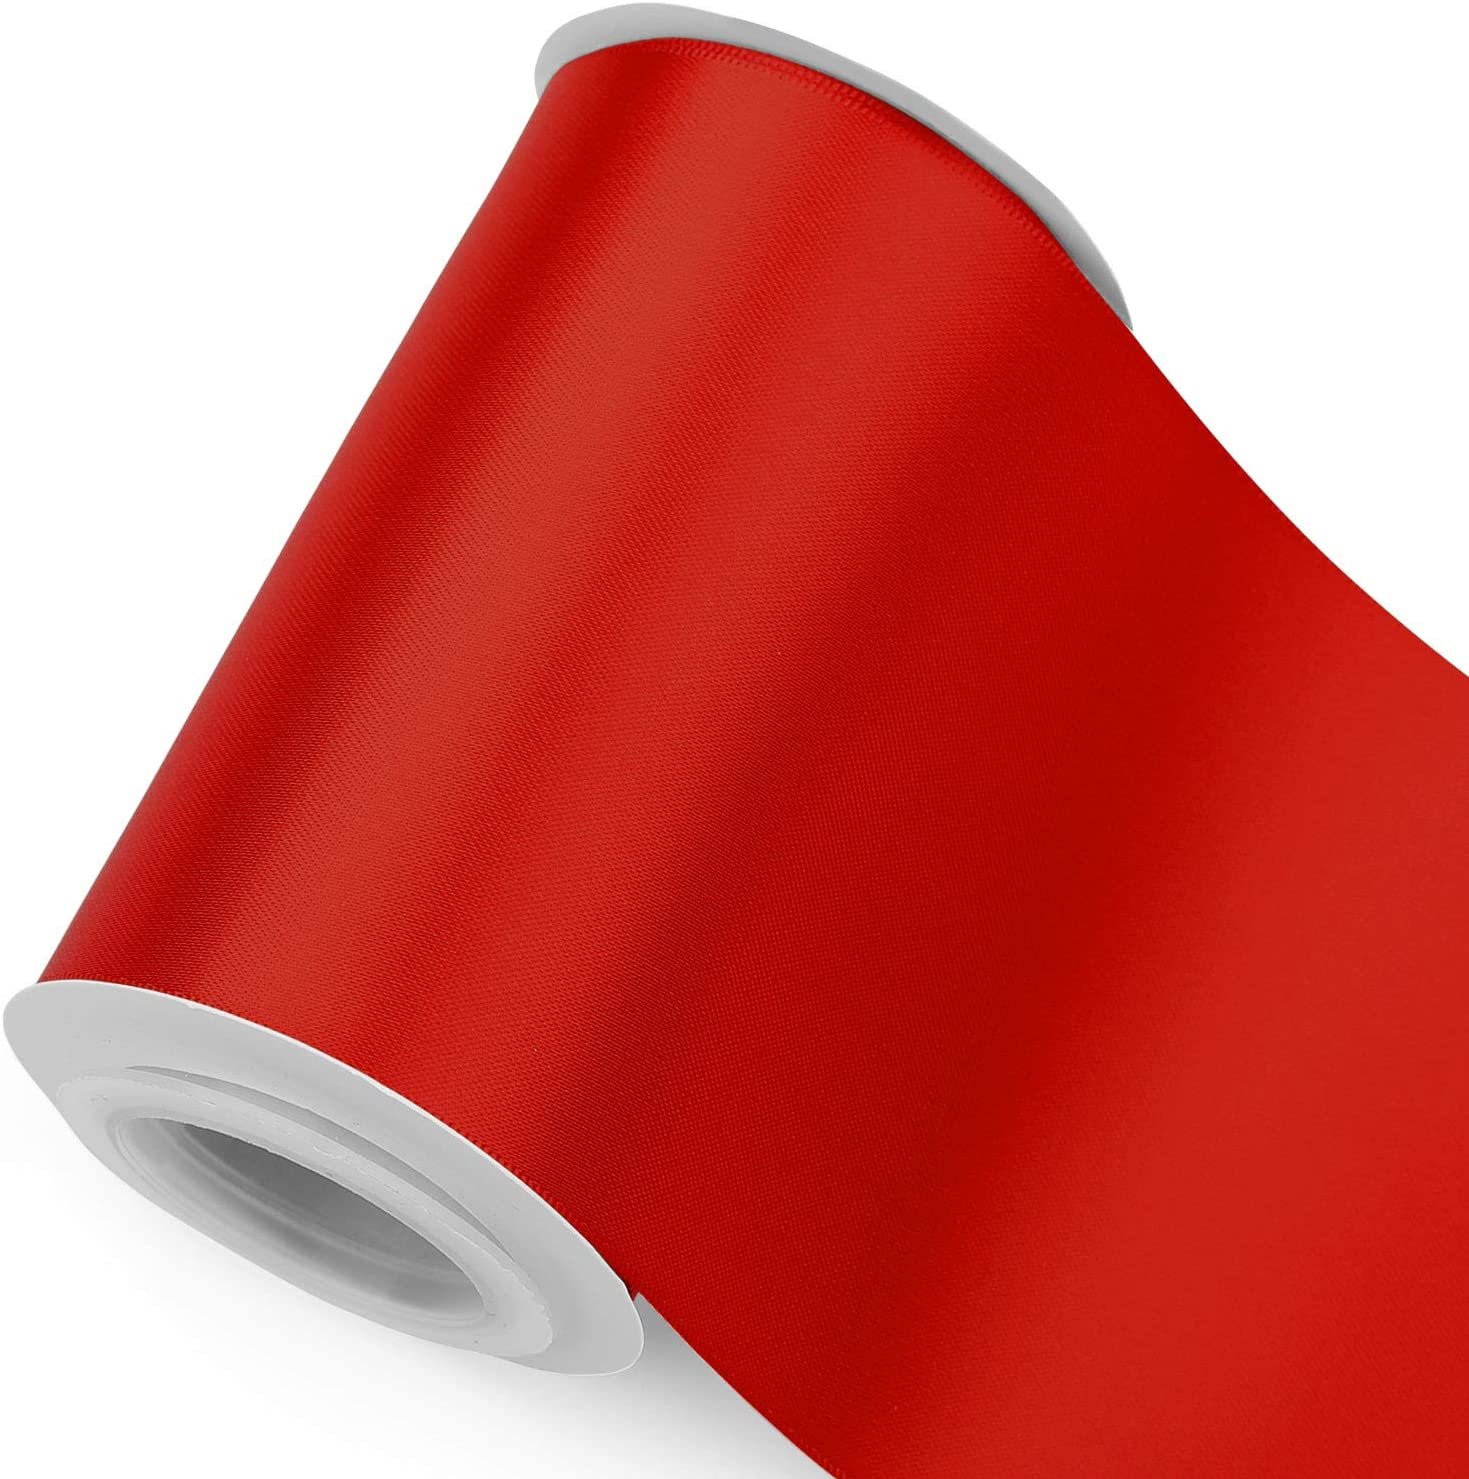 Humphrey's Craft 4 Inch Scarlet Red Double Faced Satin Ribbon - 5 Yards Variety of Color for Crafts Grand Opening Cutting Ceremony Decoration Sewing Chair Sash Wedding and Dining Tables.